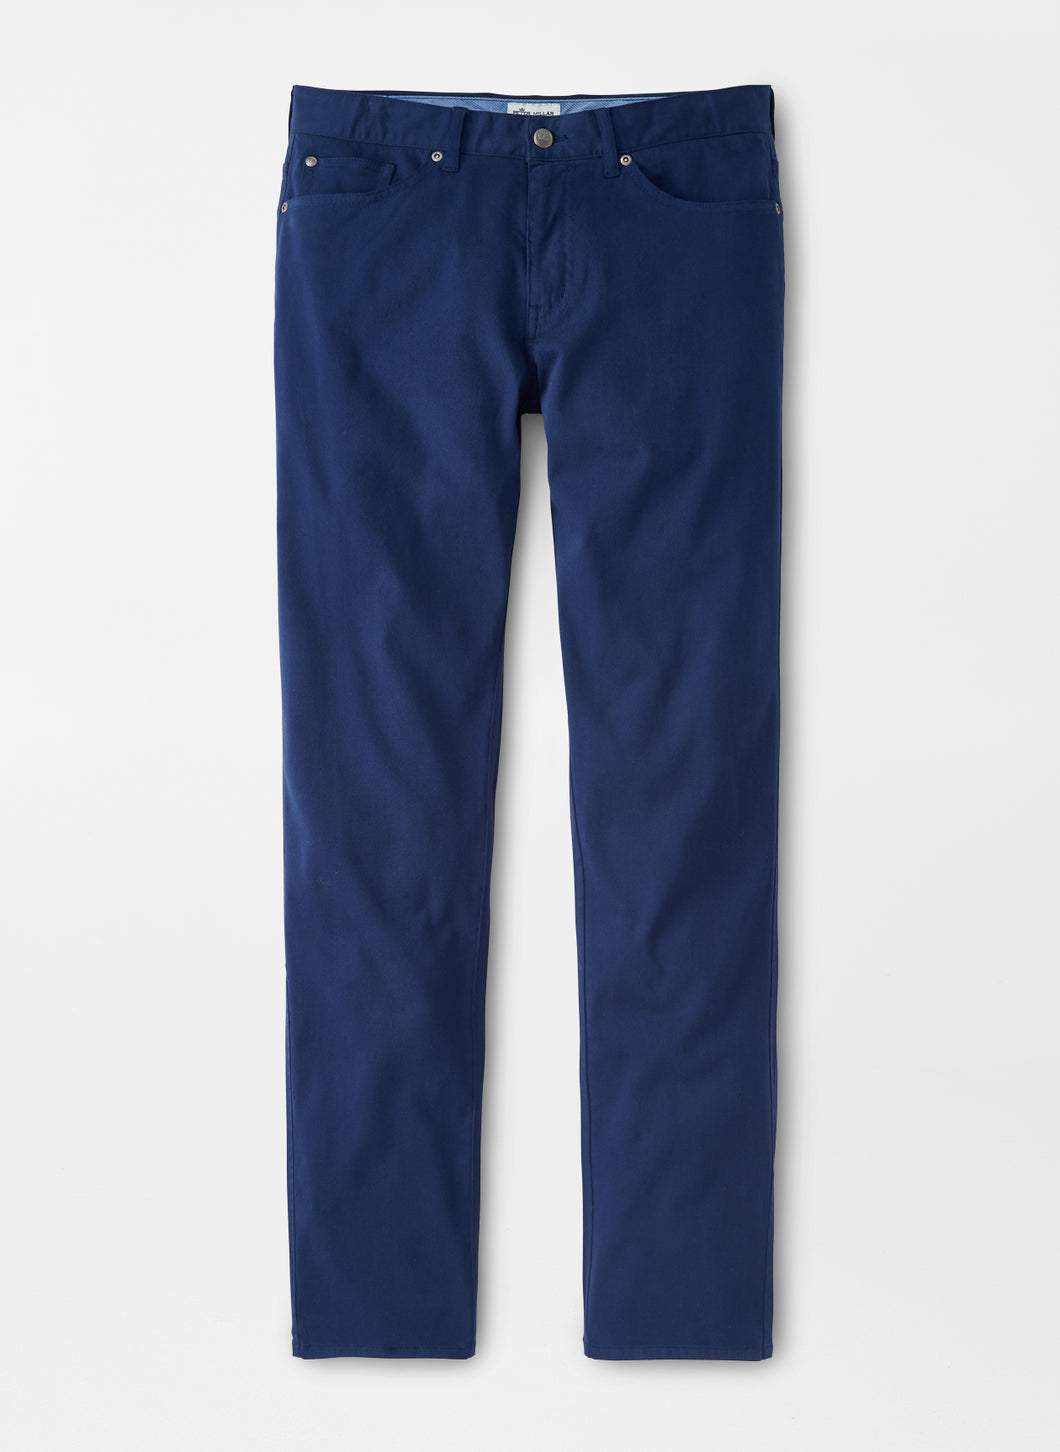 Peter Millar Ultimate Sateen Five-Pocket Pant in Midnight